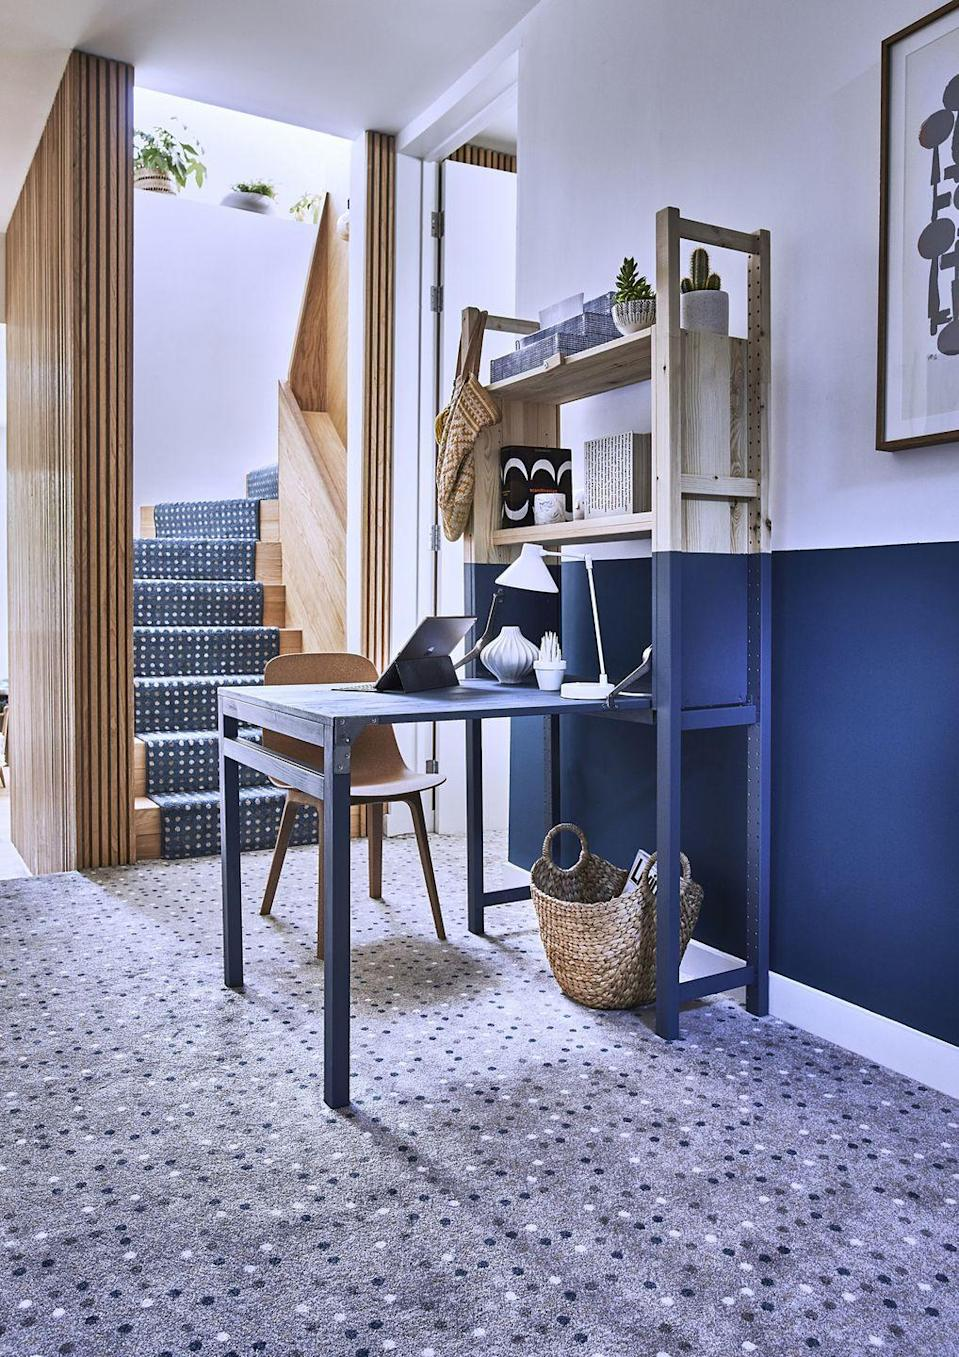 """<p>Why not use your staircase to add a pop of colour. This blue stair carpet from Carpetright is ideal for jazzing up an all-white hallway — and will cheer up any rainy day. </p><p>Pictured: <a href=""""https://www.carpetright.co.uk/carpets/condo-wilton-carpet/"""" rel=""""nofollow noopener"""" target=""""_blank"""" data-ylk=""""slk:'Condo Patterned Carpet' by Carpetright"""" class=""""link rapid-noclick-resp"""">'Condo Patterned Carpet' by Carpetright</a></p>"""